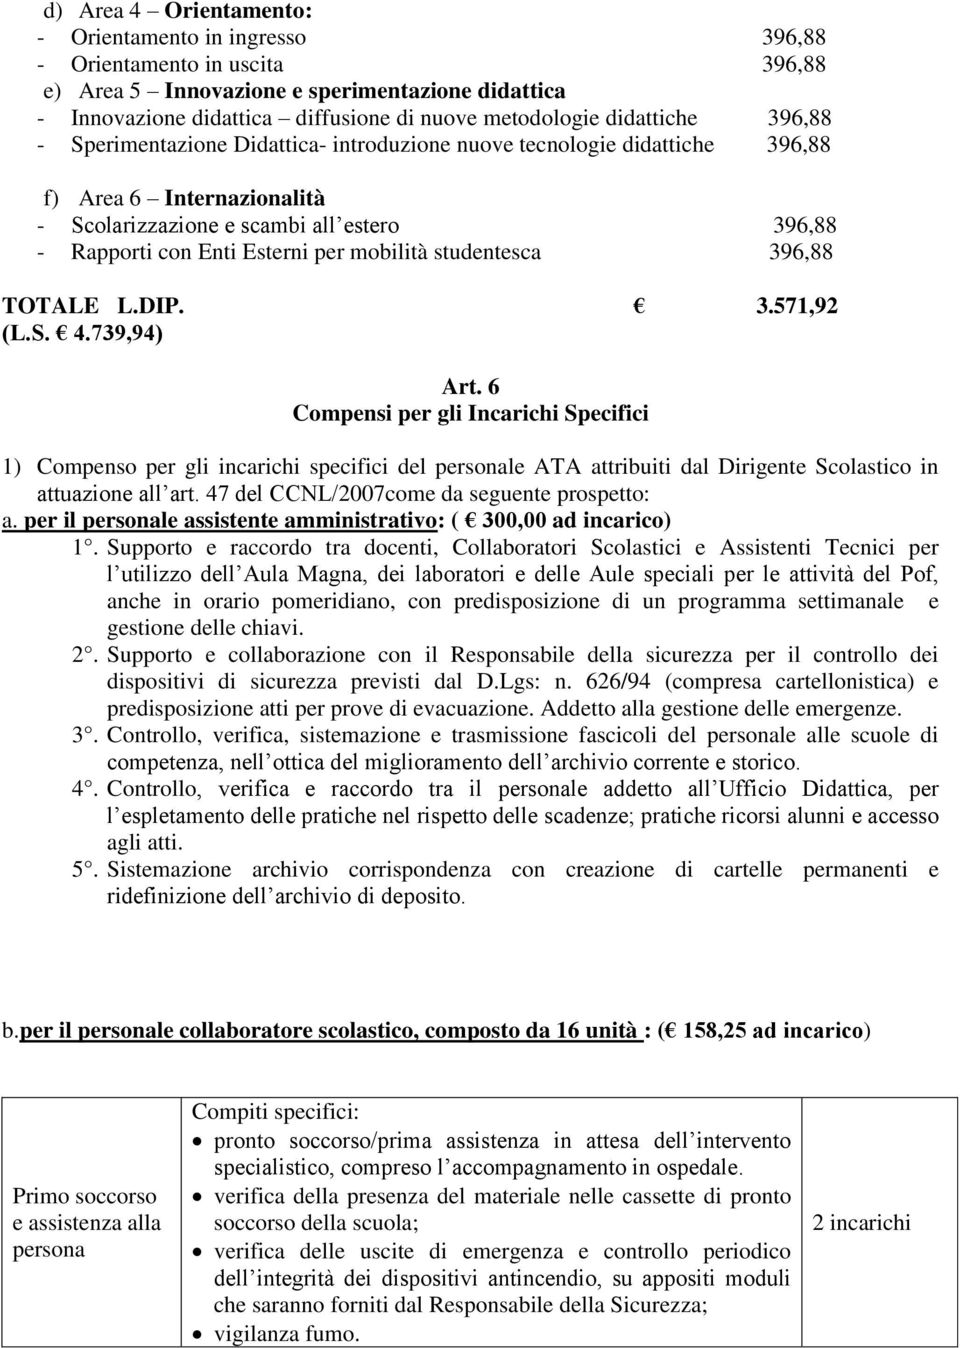 mobilità studentesca 396,88 TOTALE L.DIP. 3.571,92 (L.S. 4.739,94) Art.